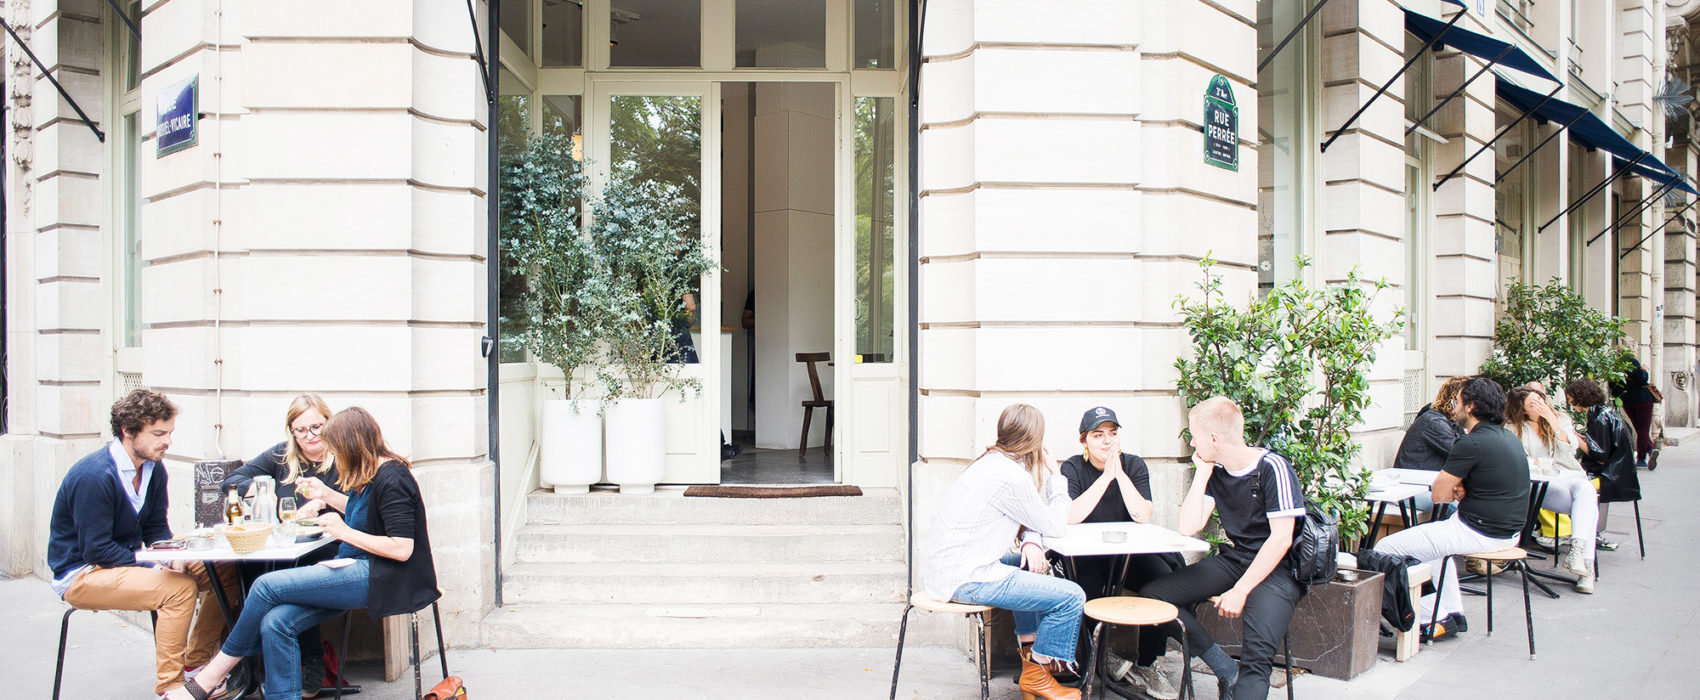 Paris Neighborhoods: Le Marais